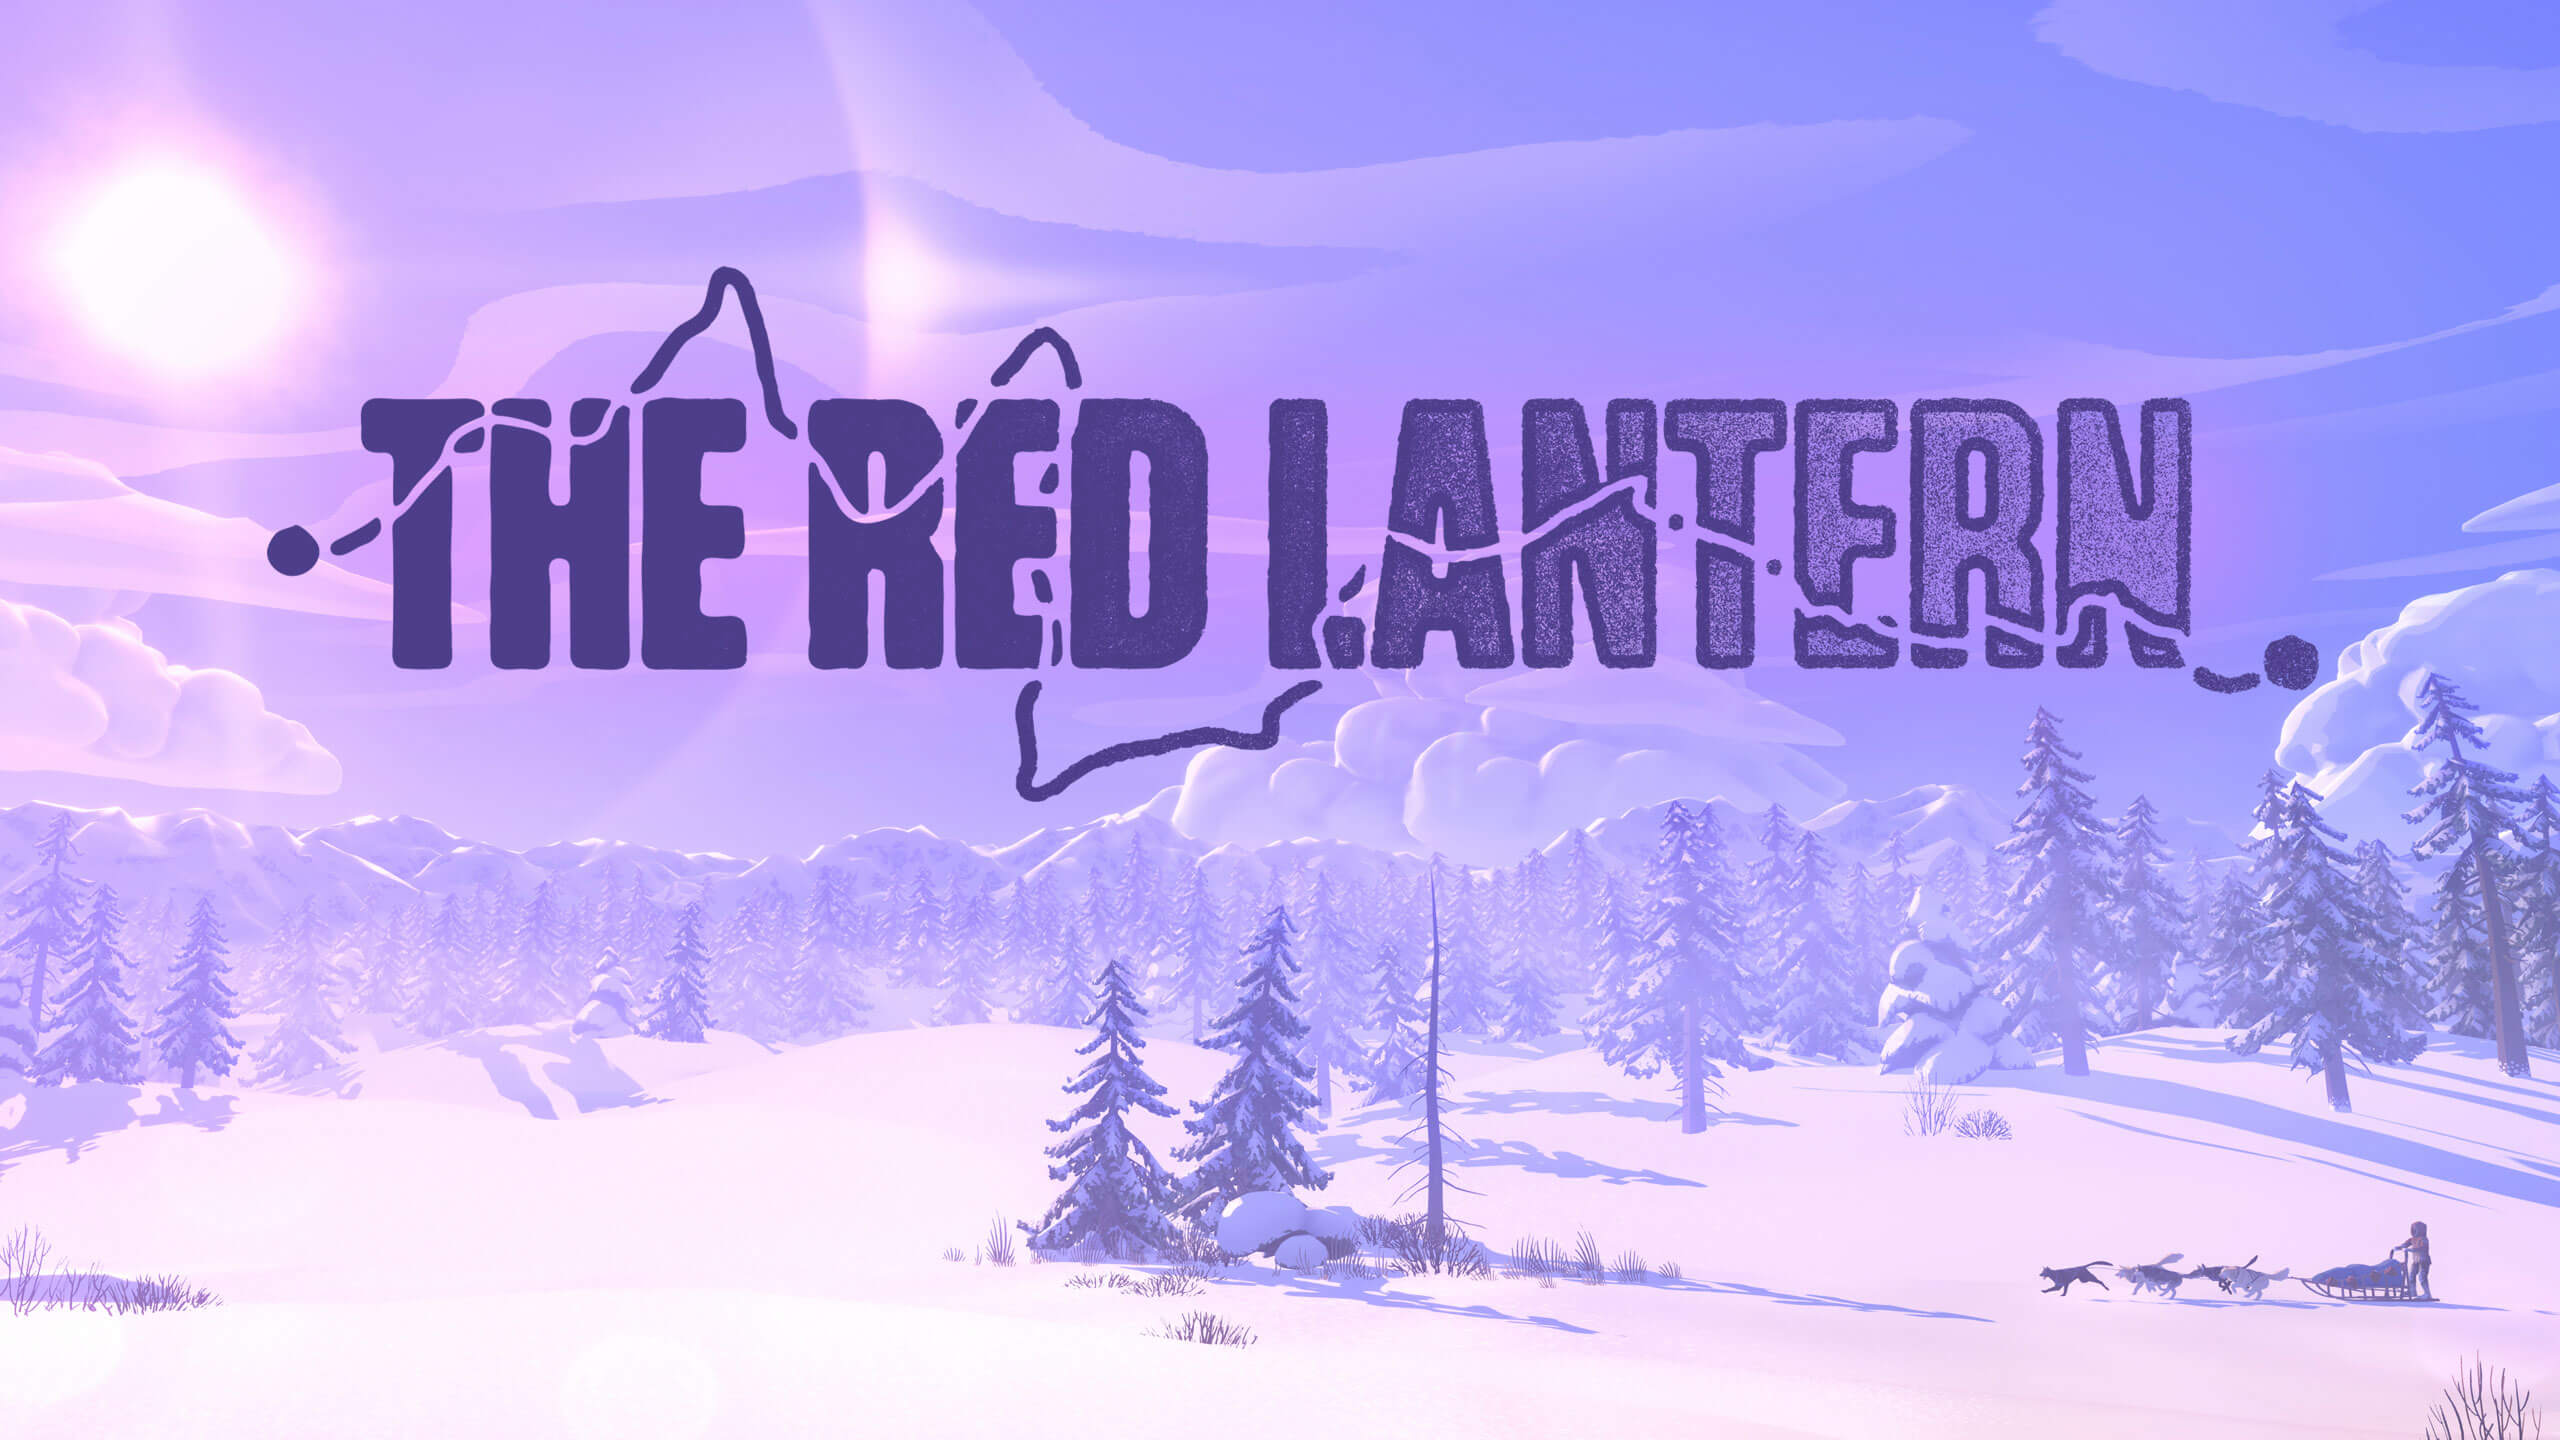 Timberline Studio afirmó que este mes llega al mercado The Red Lantern para PC y Nintendo Switch